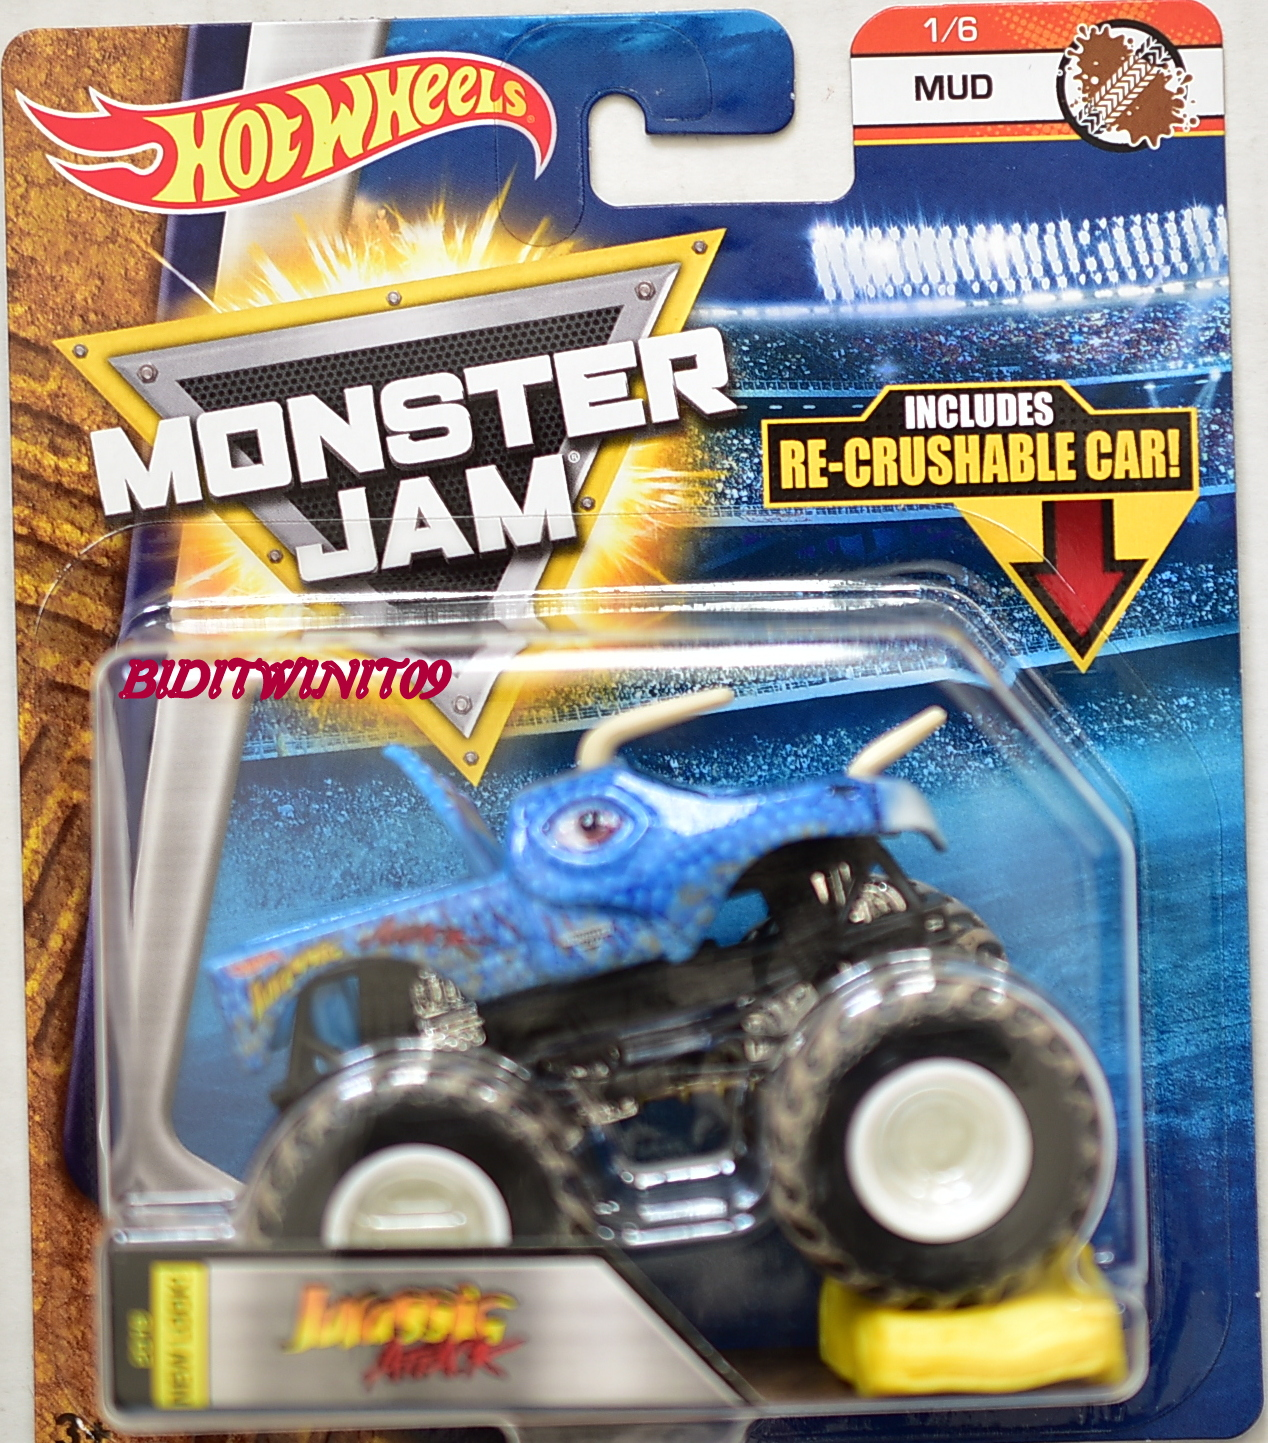 HOT WHEELS 2017 MONSTER JAM W/ RE-CRUSHABLE CAR JURASSIC ATTACK MUD 1/6